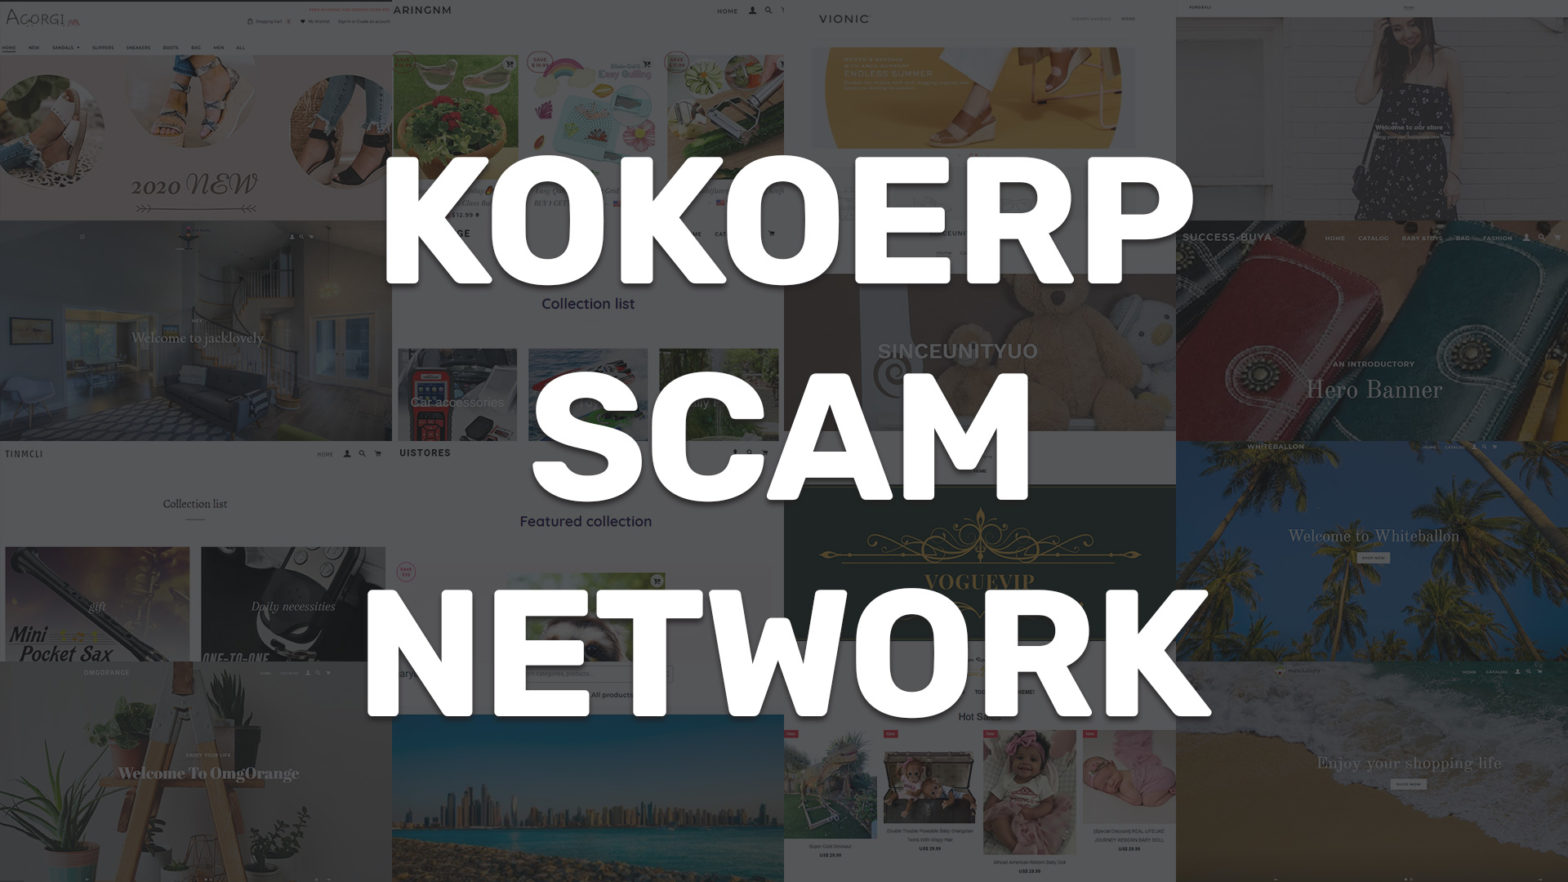 kokoerp scam network collage